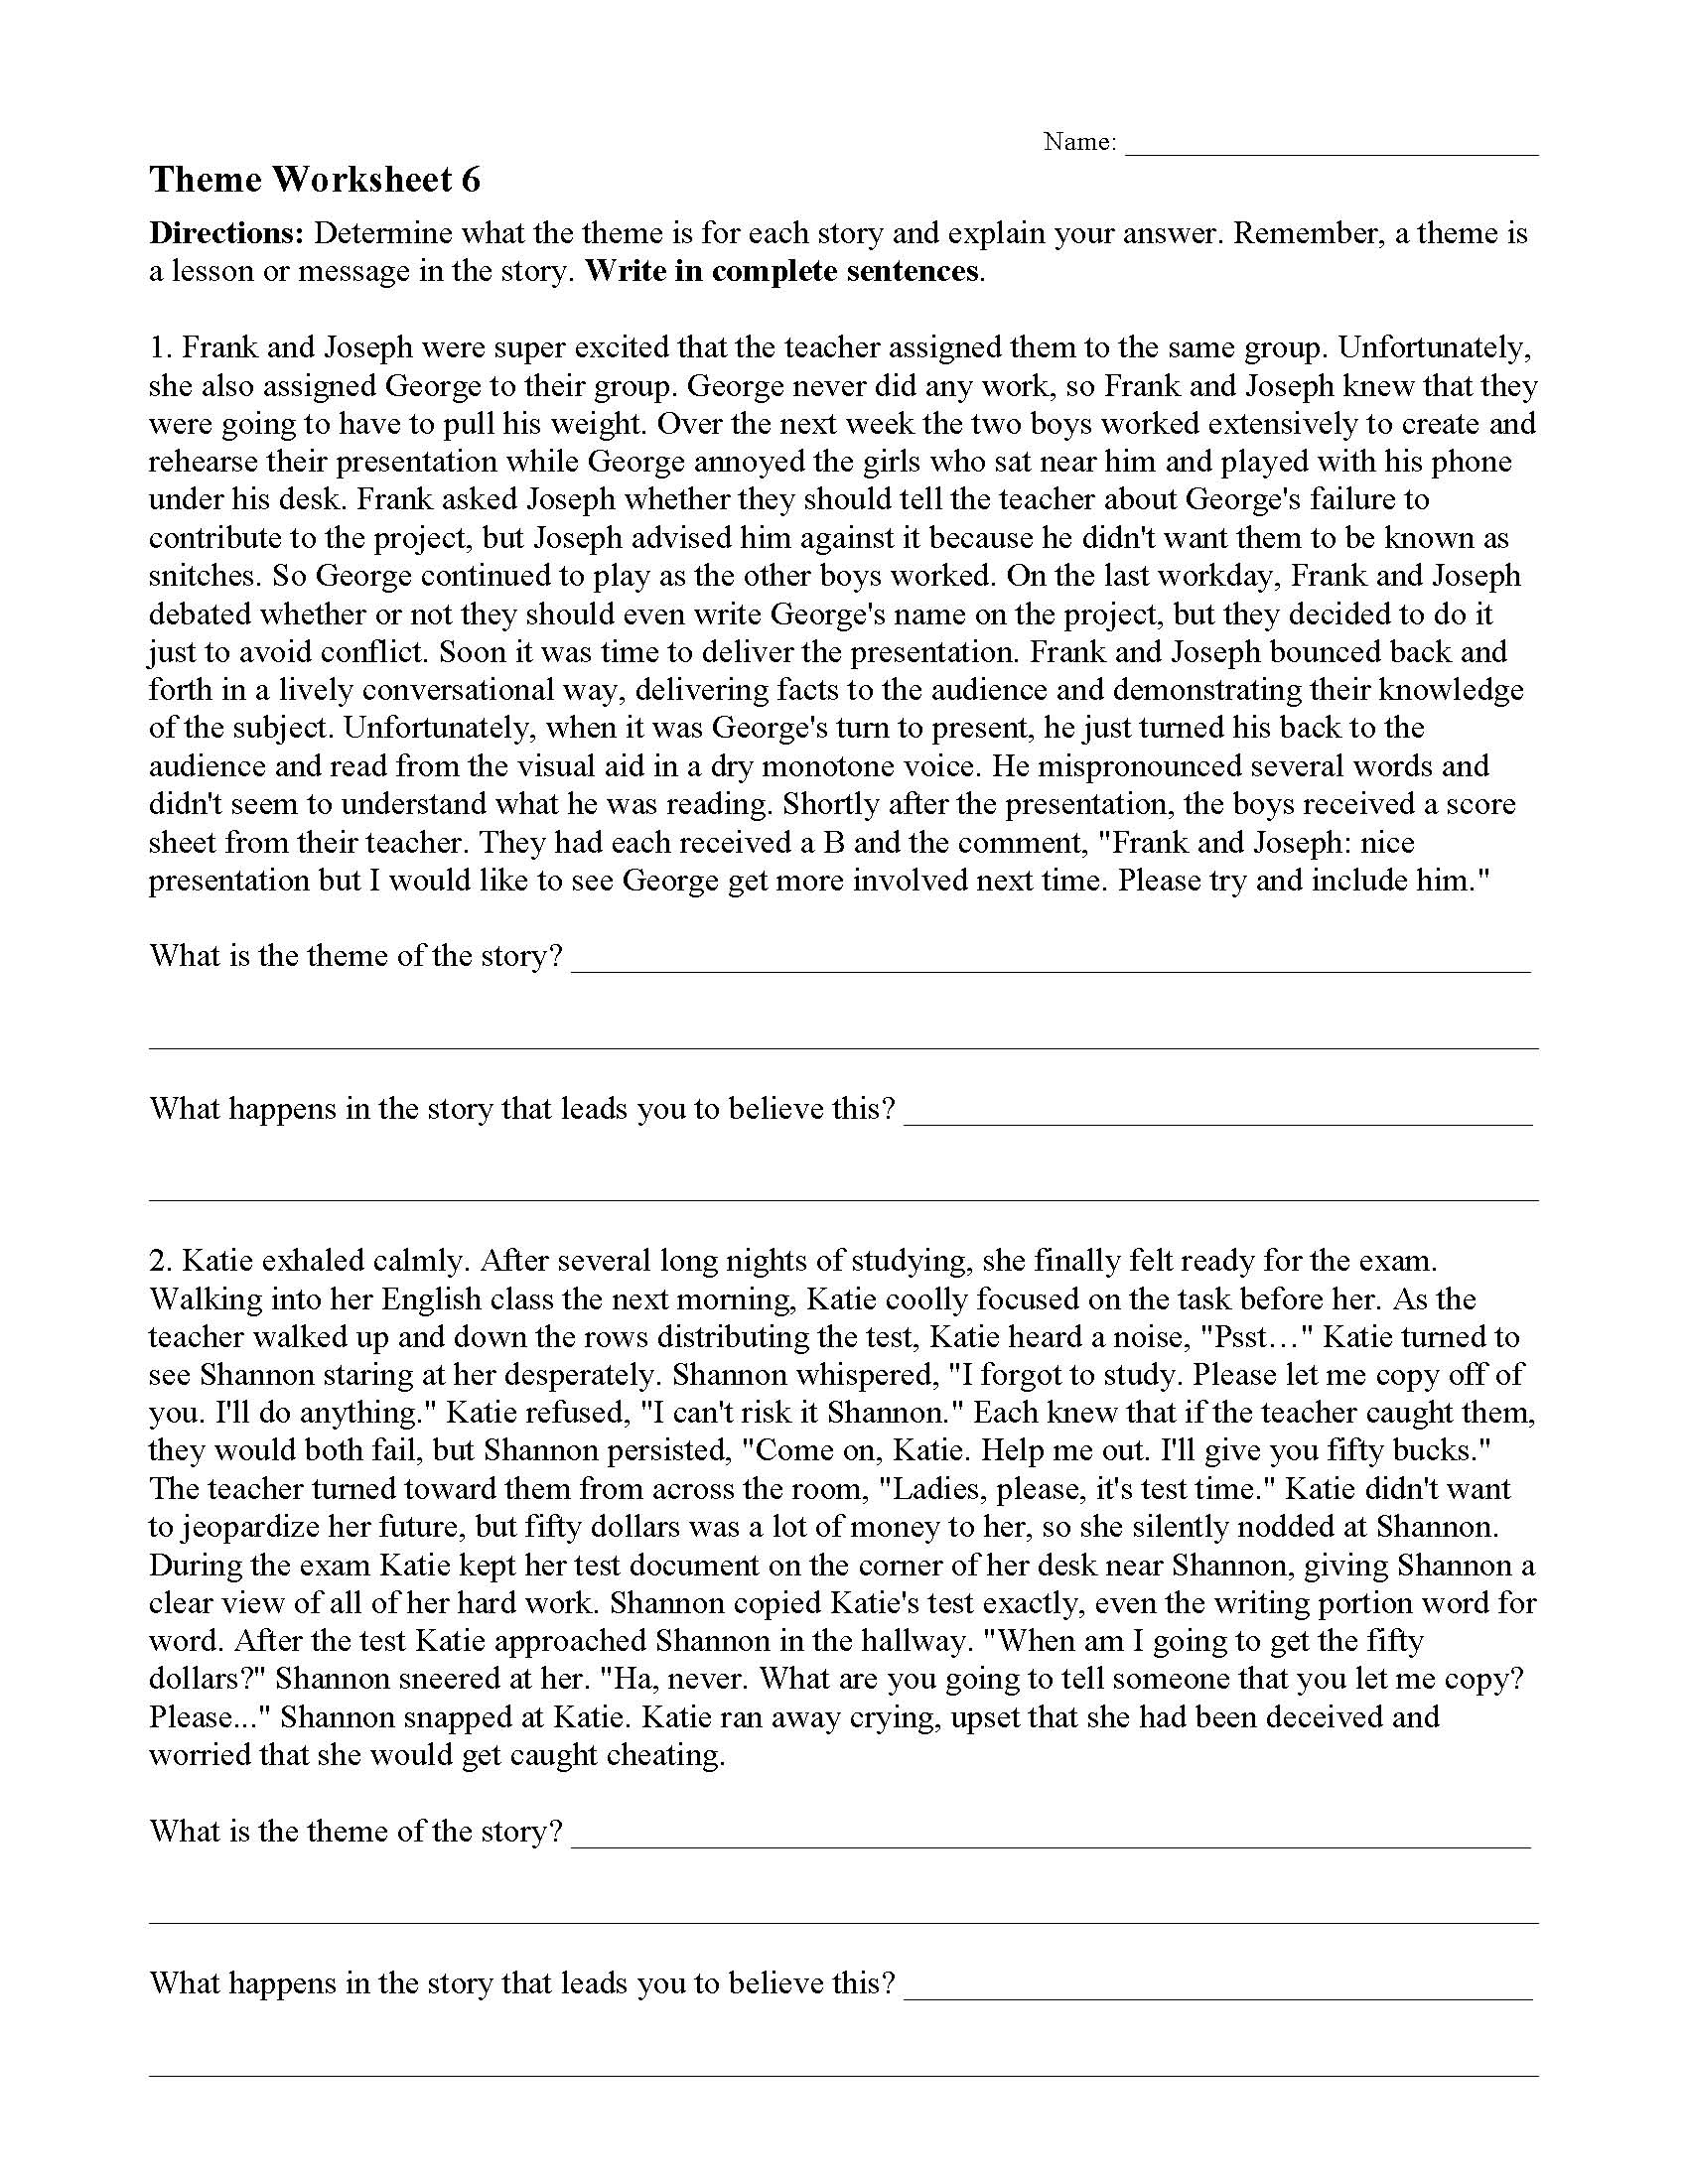 Theme Or Author S Message Worksheets Ereading Worksheets Provide a summary of the. ereading worksheets